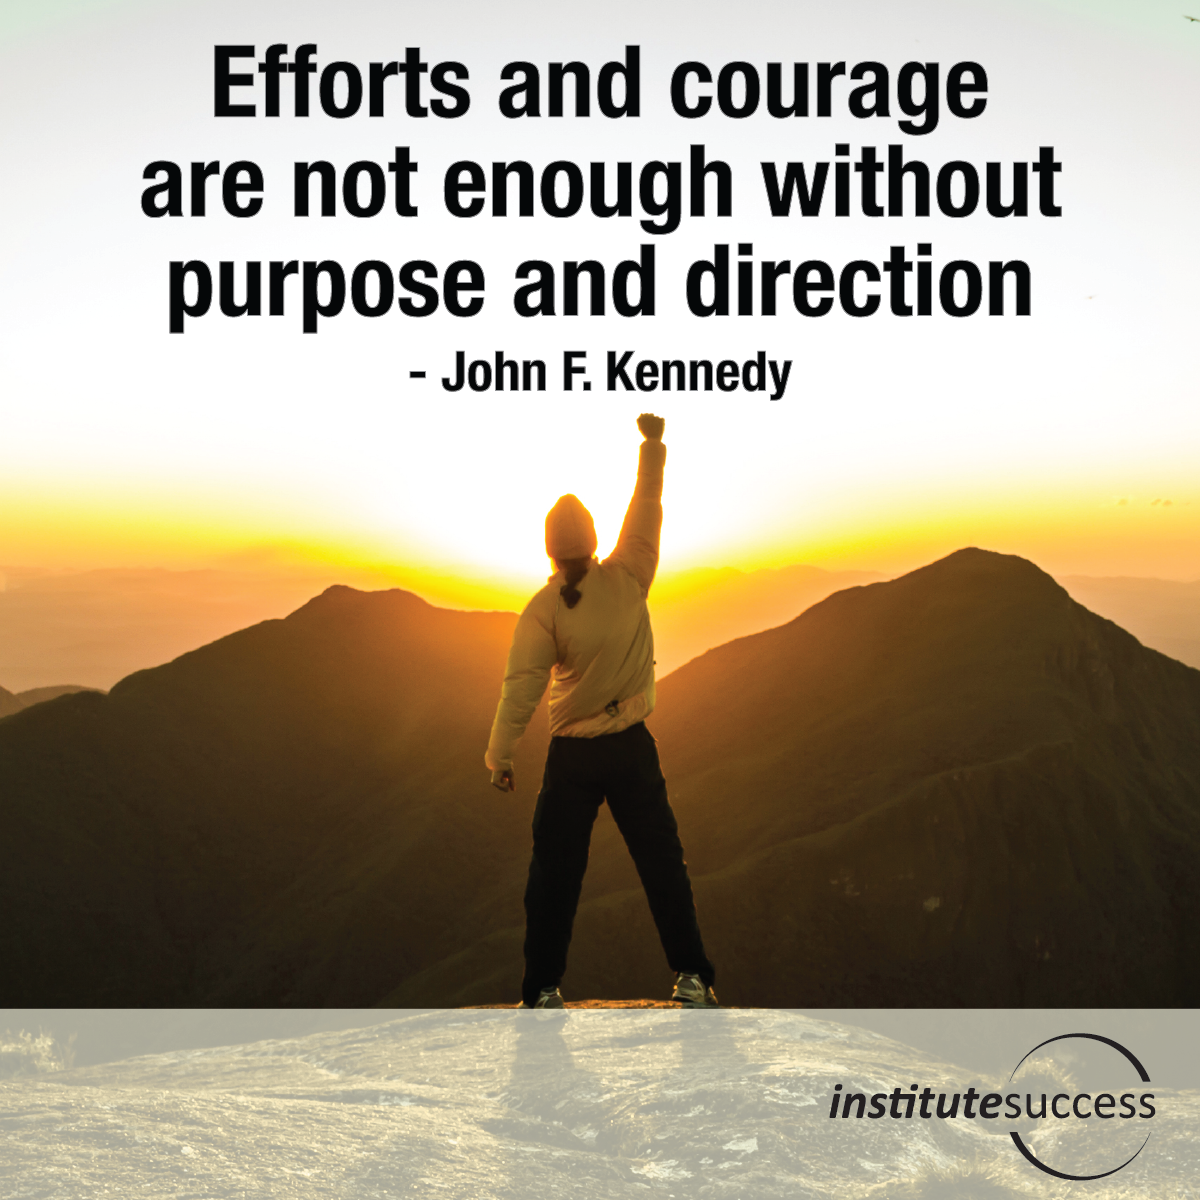 Efforts and courage are not enough without purpose and direction – John F. Kennedy